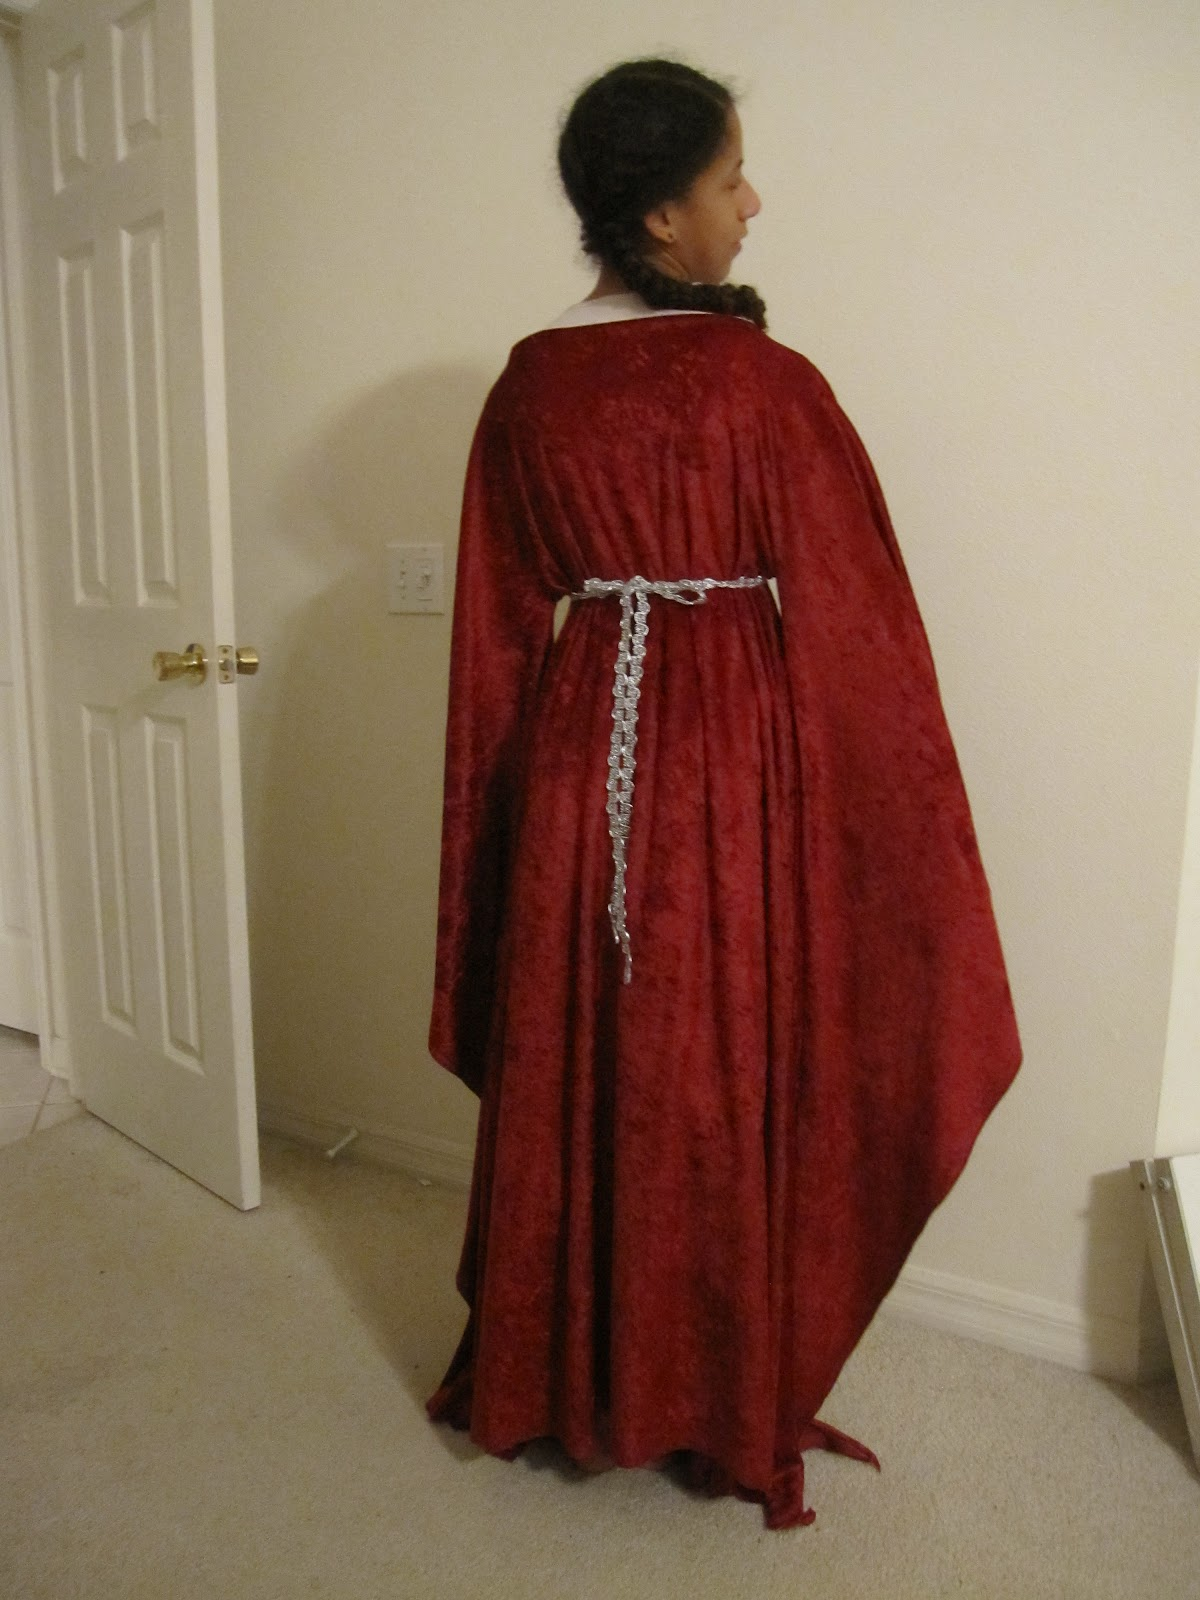 Barefoot Bladeweaver: Penny\'s Dabbles -- The Guinevere Dress